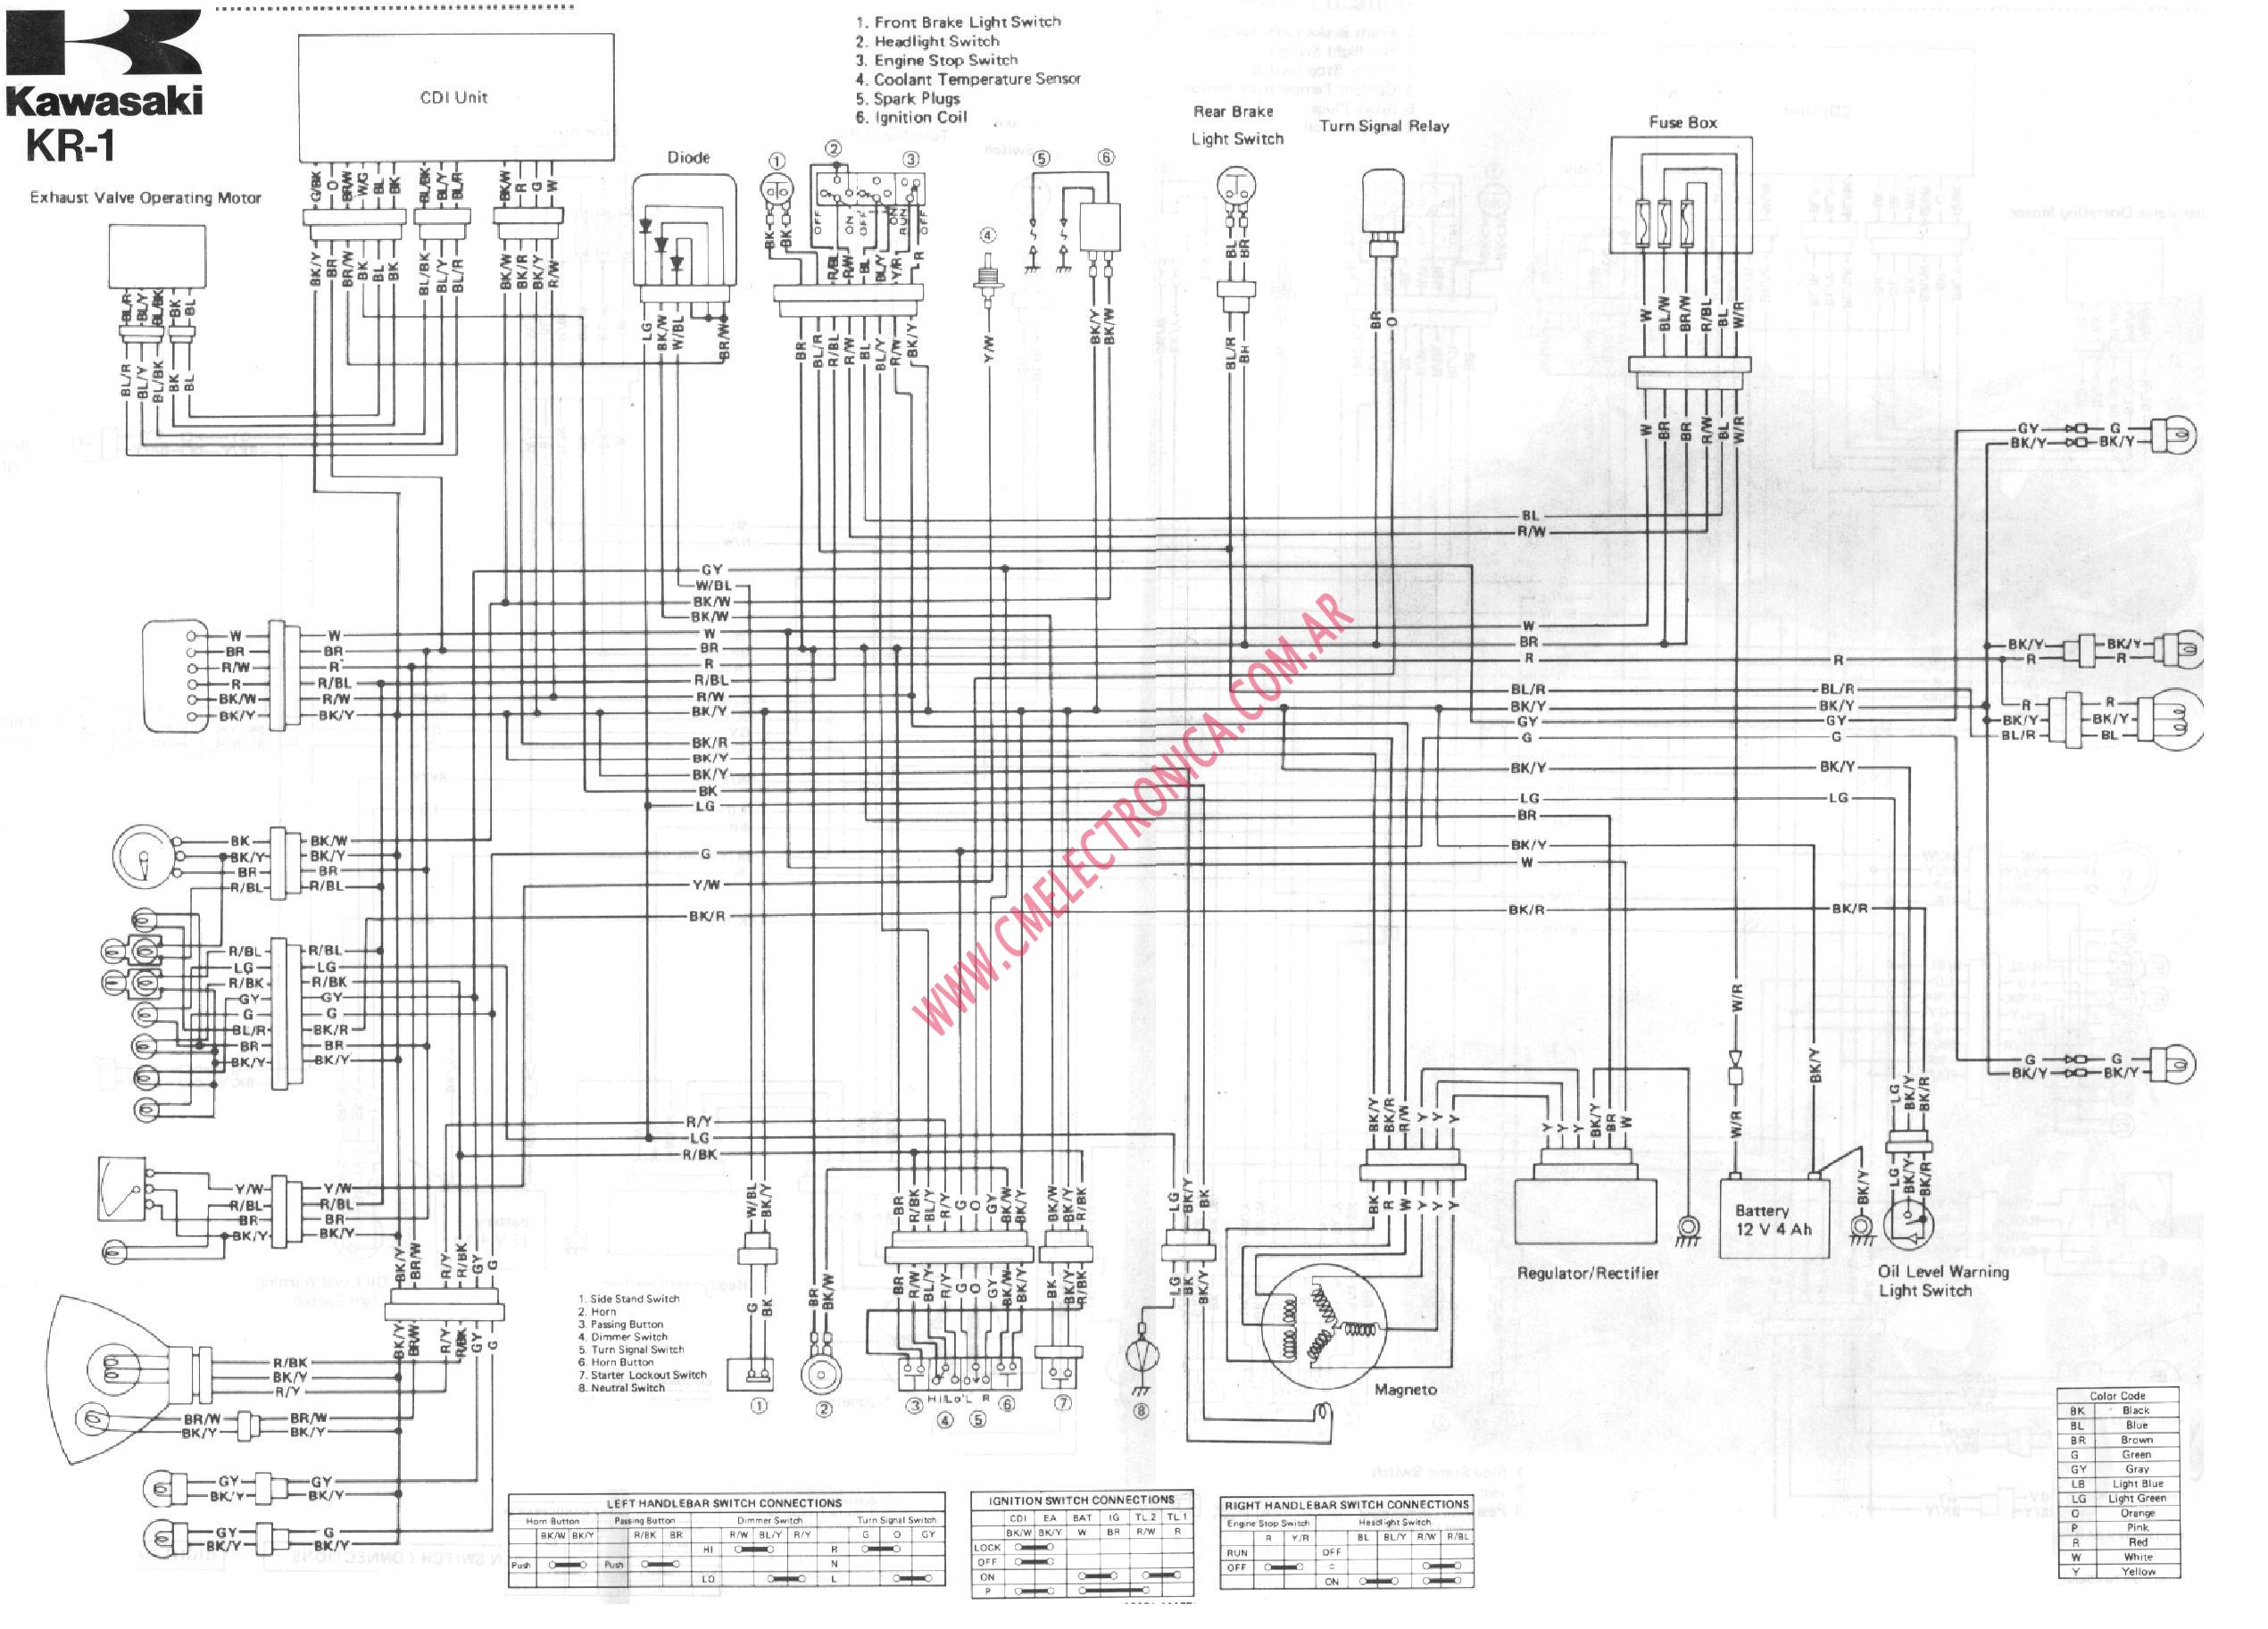 32FF2 Kawasaki 500 Wiring Diagram | Digital Resources on kawasaki 100 wiring diagram, kawasaki klf 220 wiring schematic, kawasaki engine wiring diagram, chinese atv transmission diagram, 220 bayou atv wiring diagram, kawasaki 4 wheeler wiring diagram, mini atv wiring diagram, yamaha atv wiring diagram, kawasaki atv transmission diagram, kawasaki v-twin wiring diagram, kawasaki 750 wiring diagram, kawasaki parts diagram, can am atv wiring diagram, kazuma atv wiring diagram, kawasaki kz650 wiring-diagram, kawasaki atv engine diagram, kawasaki electrical diagrams, kawasaki prairie 300 wiring diagram, kawasaki prairie 400 wiring diagram, kawasaki mule 2500 fly wheel,